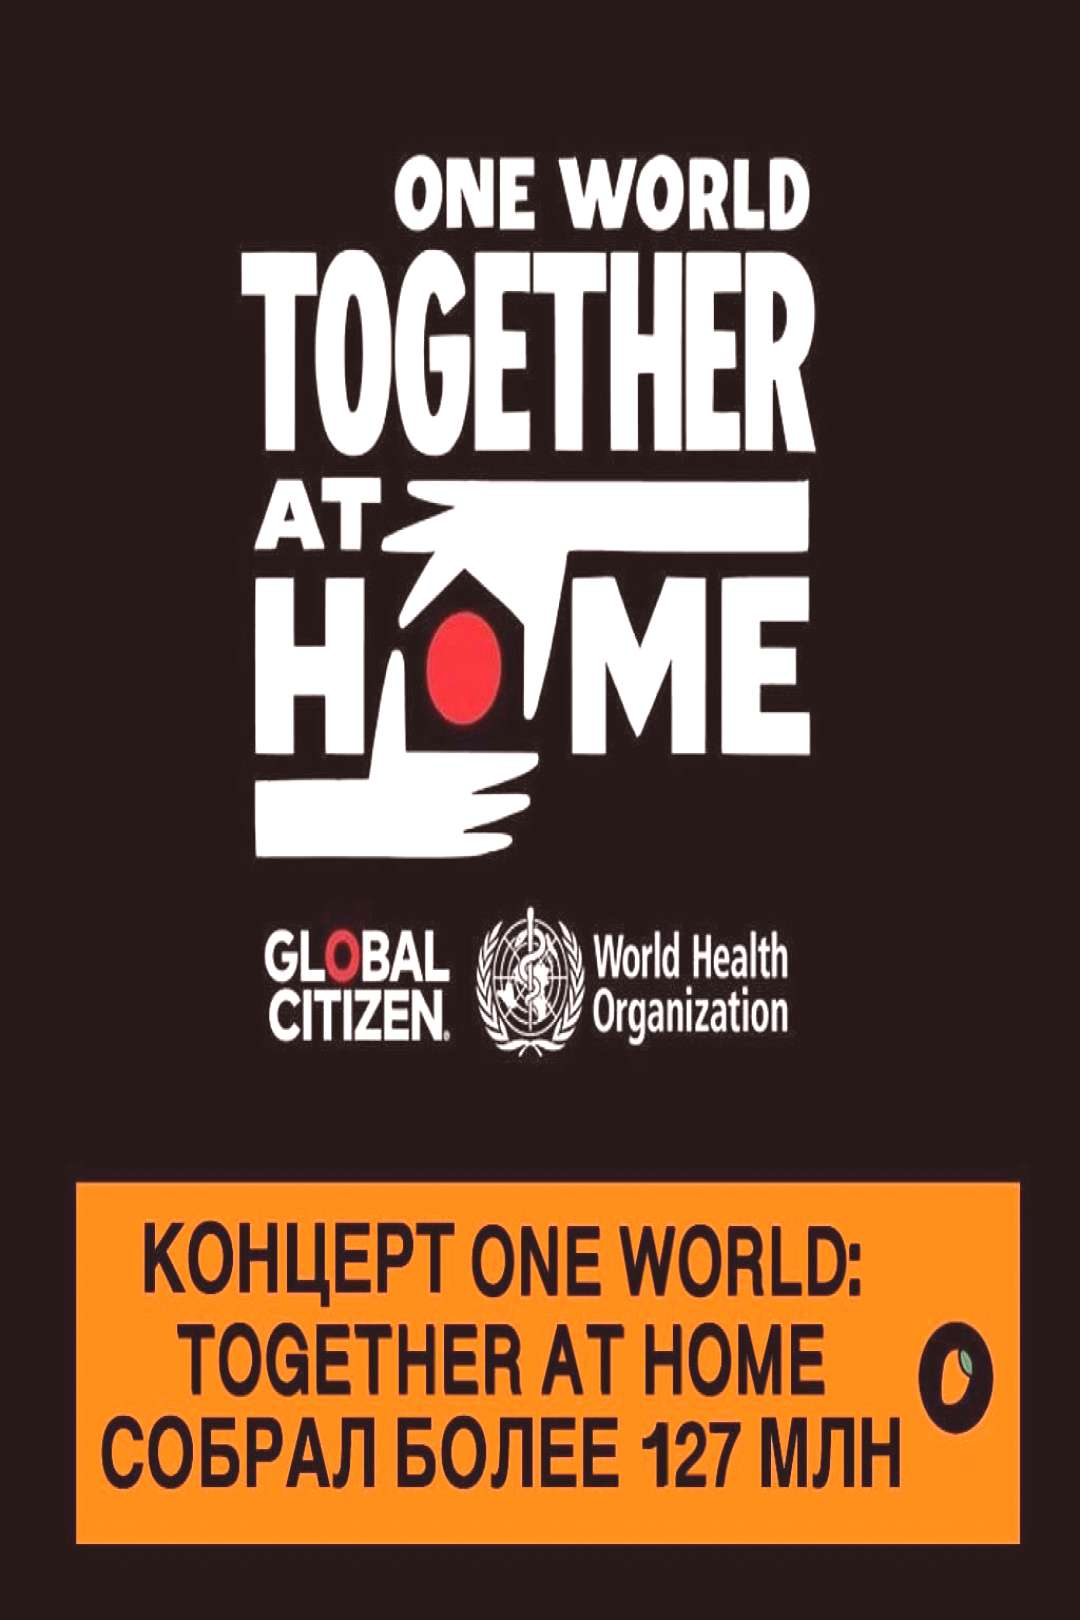 MANGO MEDIA on April 21 2020 text that says ONE WORLD TOGETHER AT